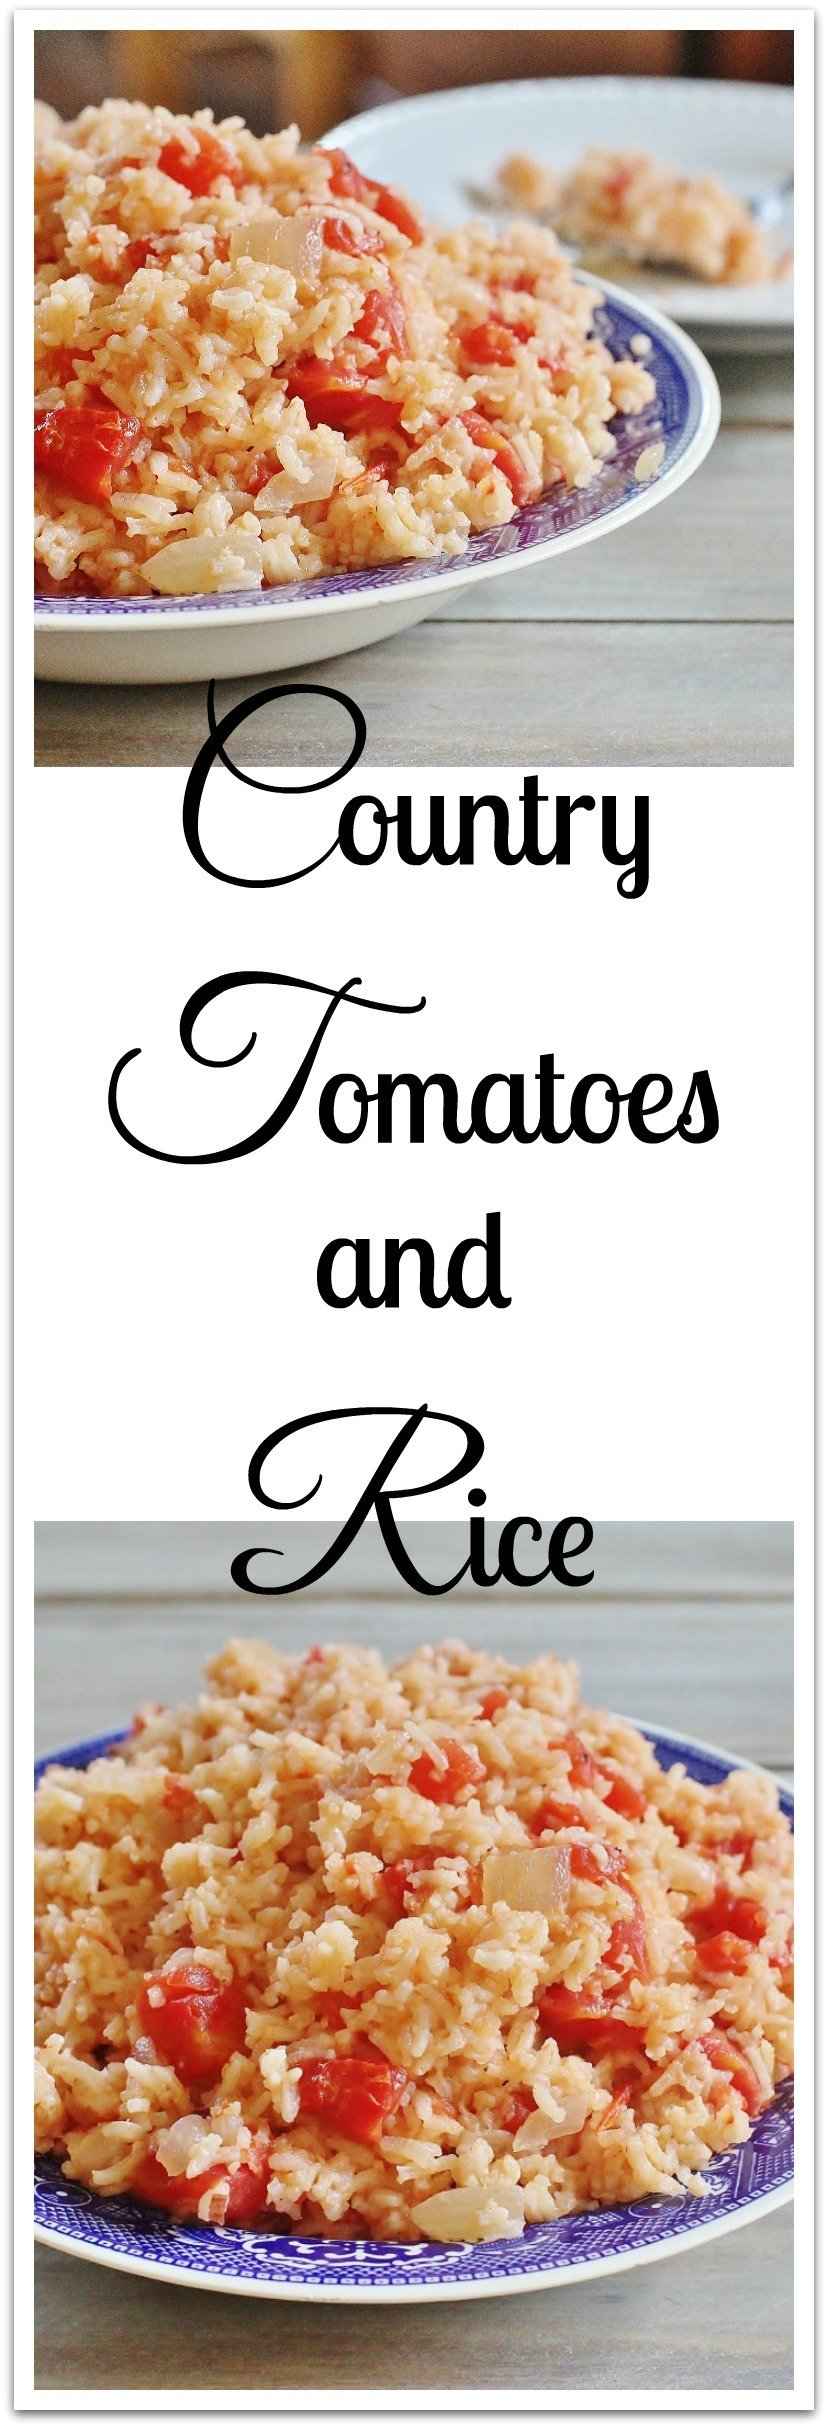 So, here we are back home and I'm cooking up Tomatoes and Rice. #Tomatoes #Rice